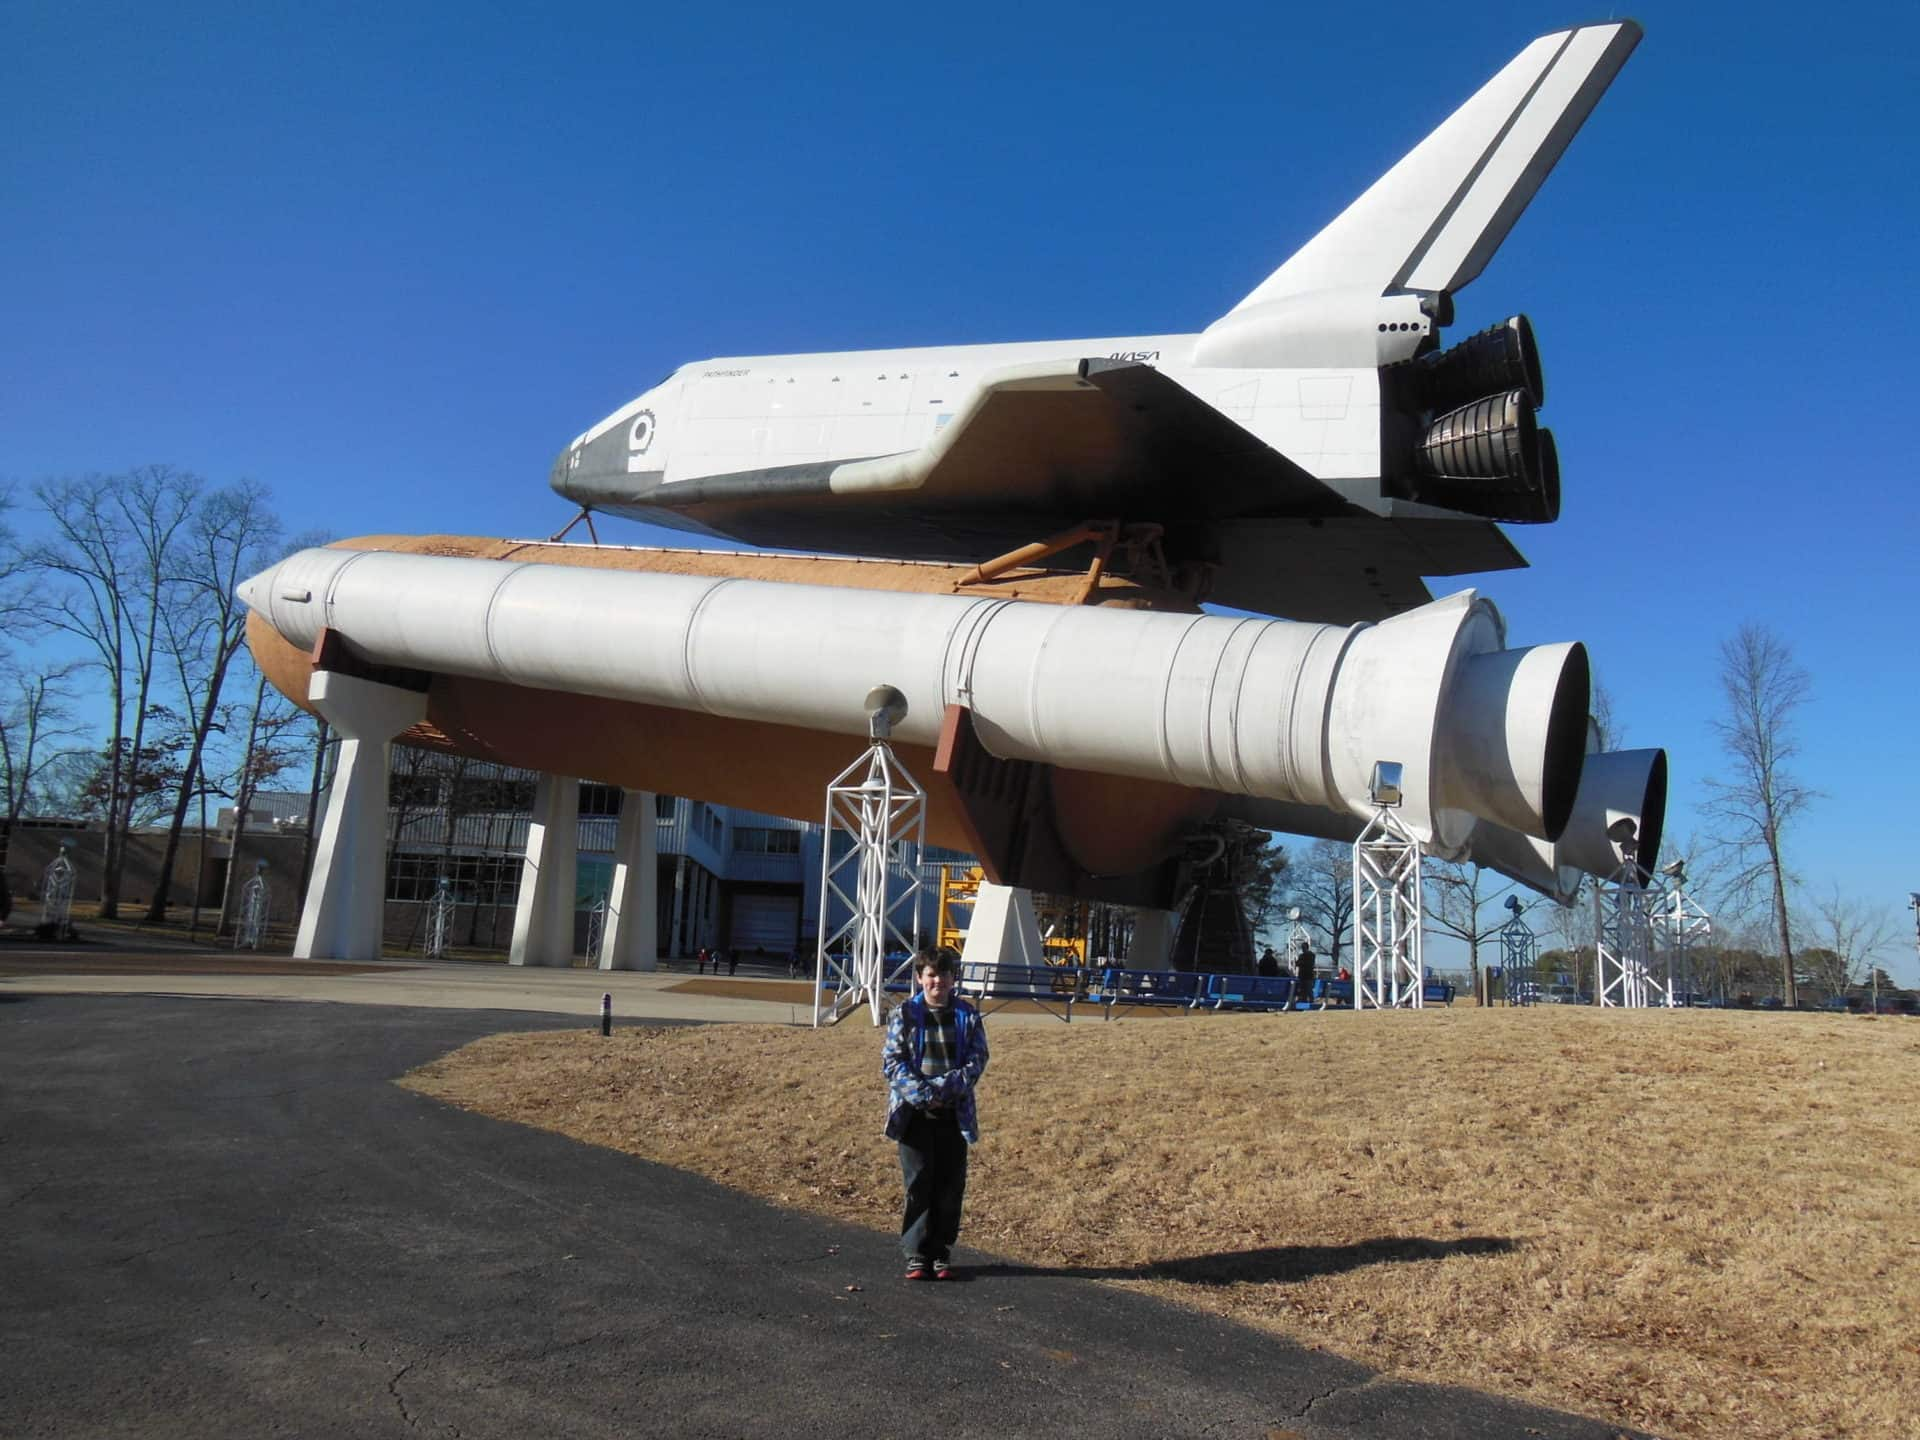 US Space and Rocket Center - Pathfinder